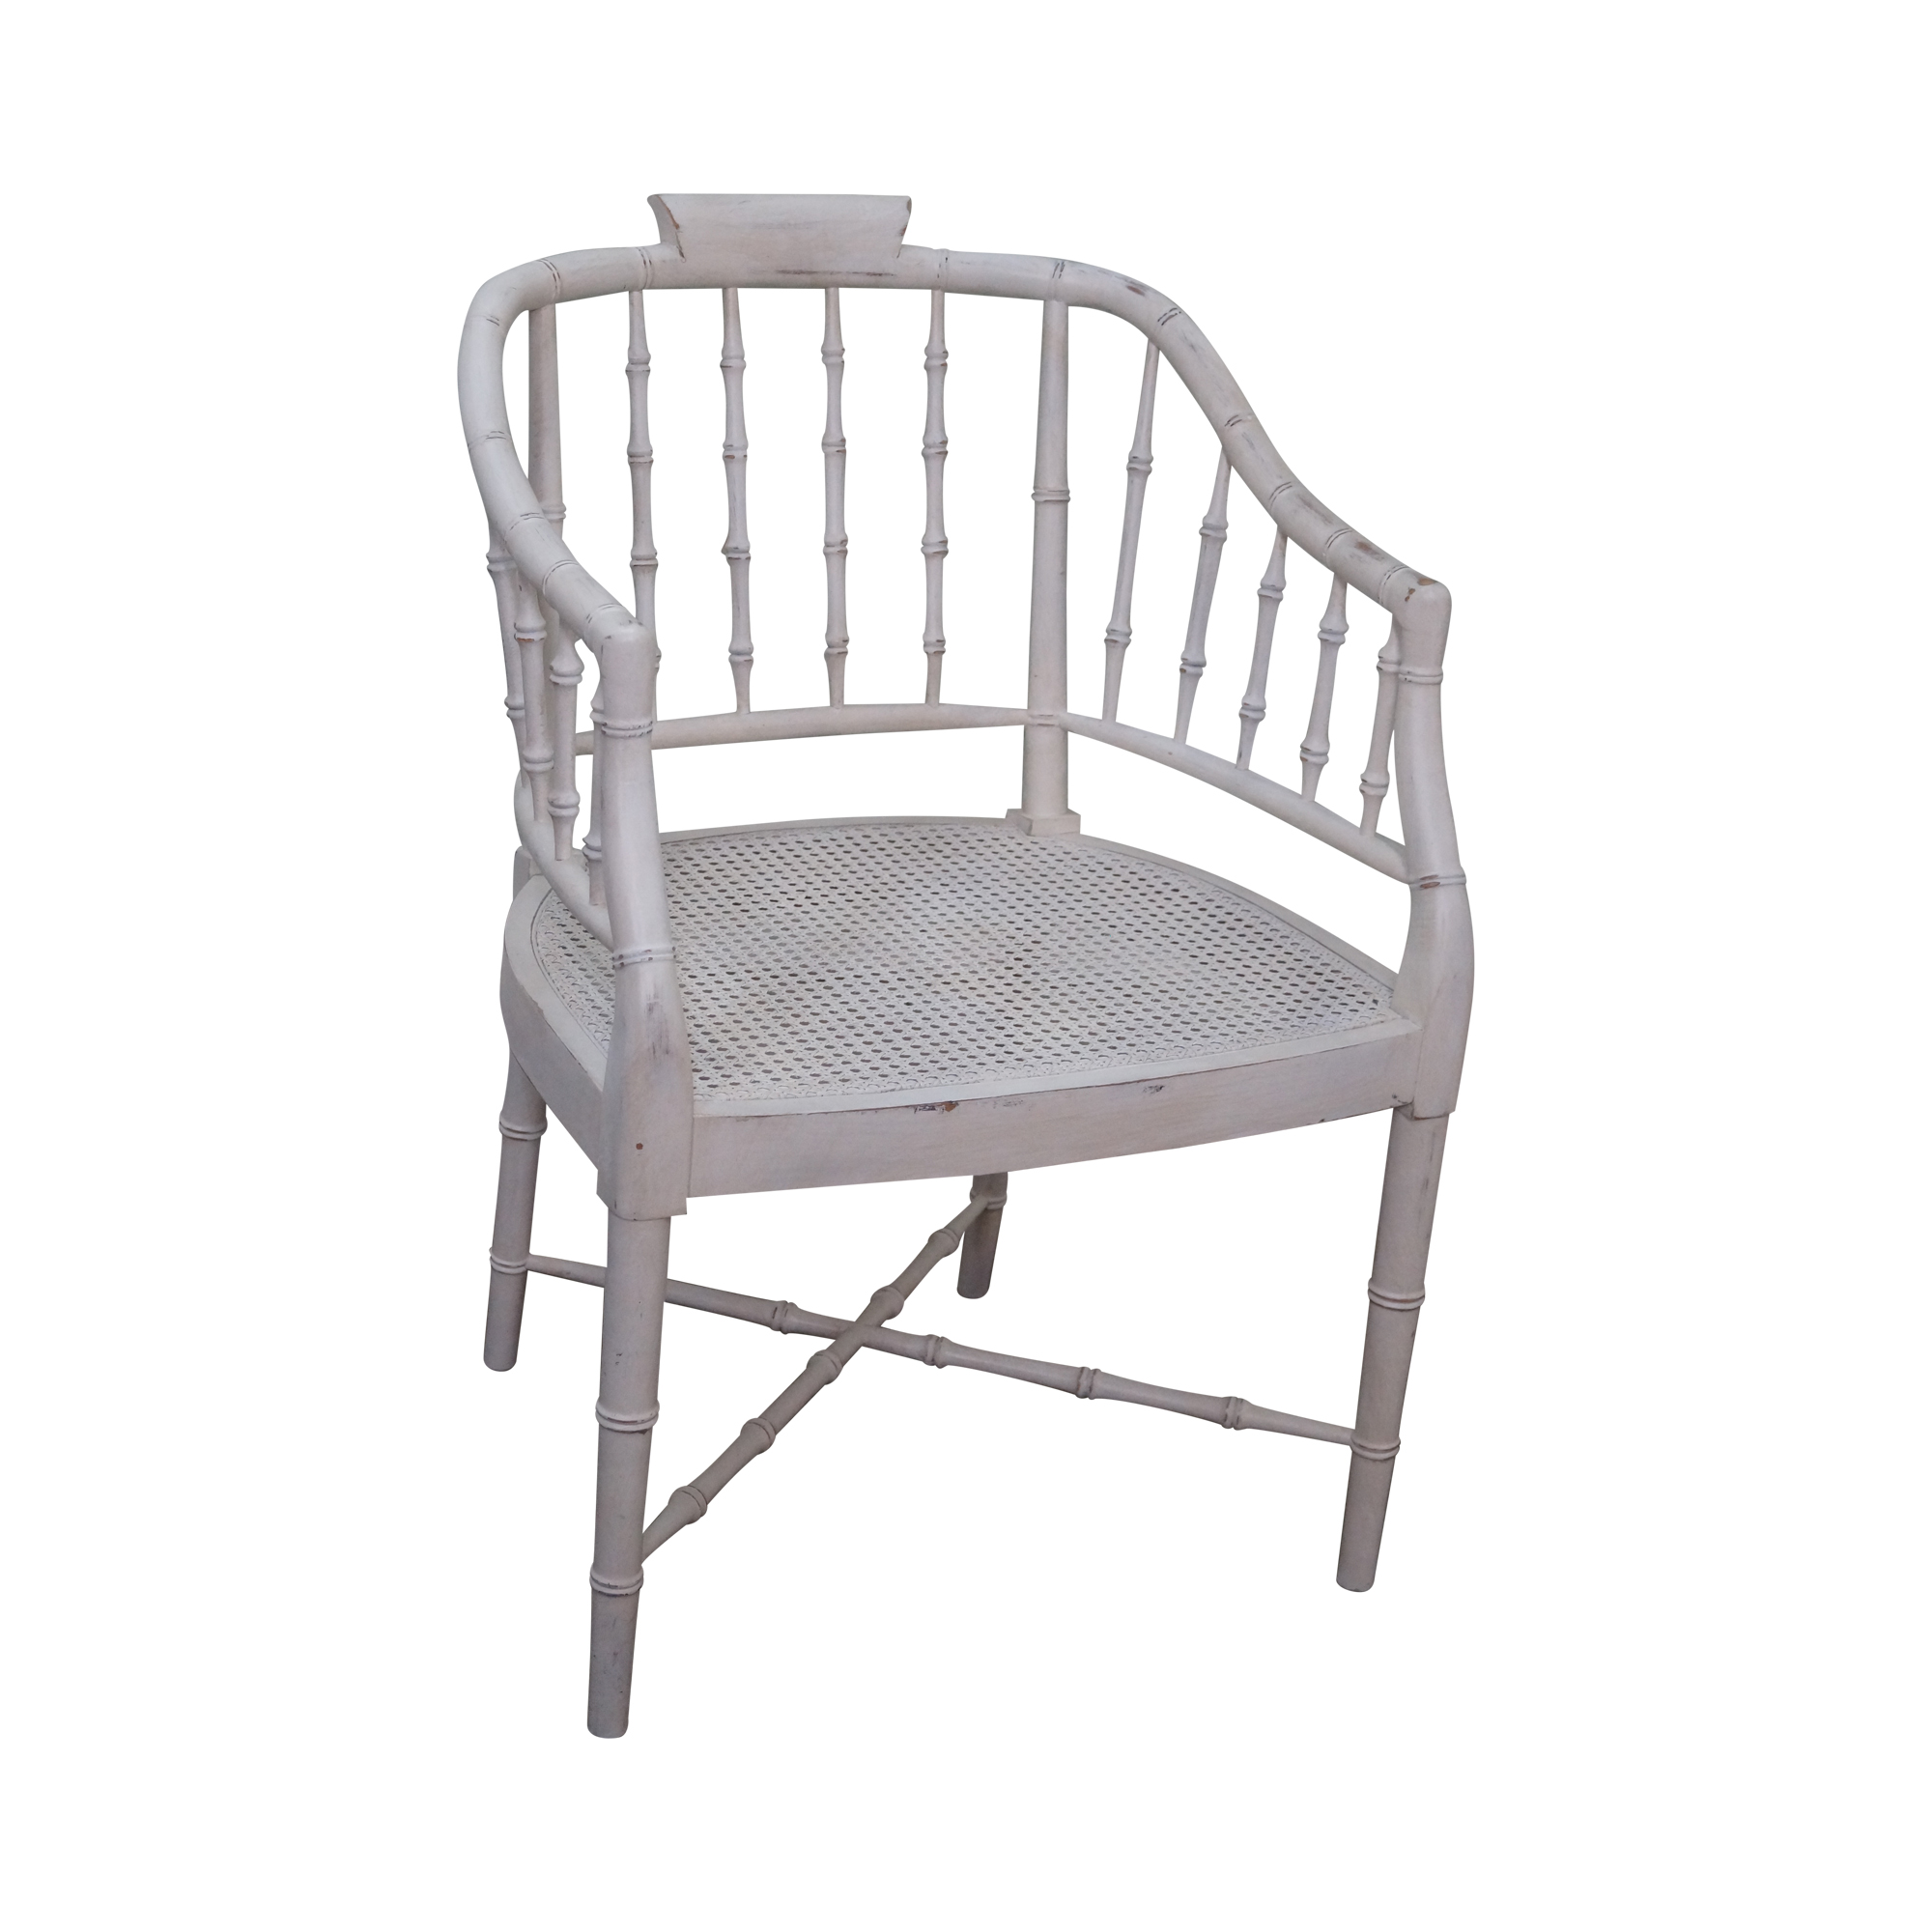 Bamboo Chair With Arms: Century White Faux Bamboo Barrel Back Arm Chair